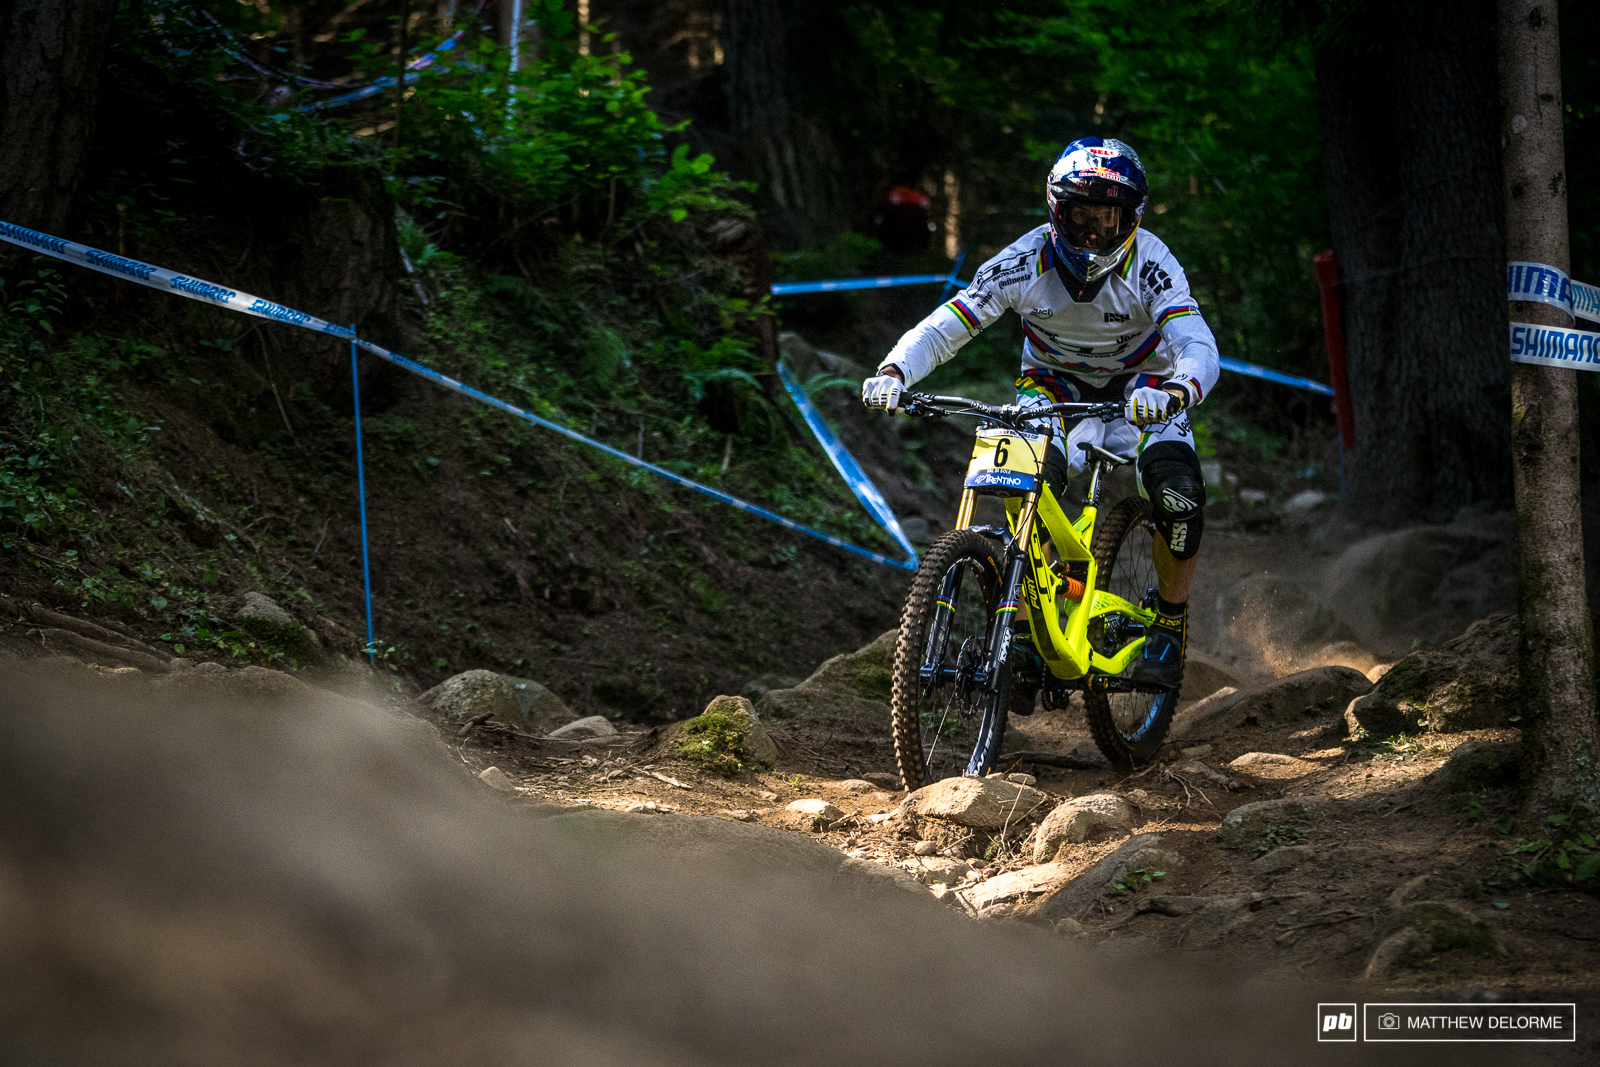 Gee Atherton couldn t add a win to his Val Di Sole record today. The World Champ finished sixth.